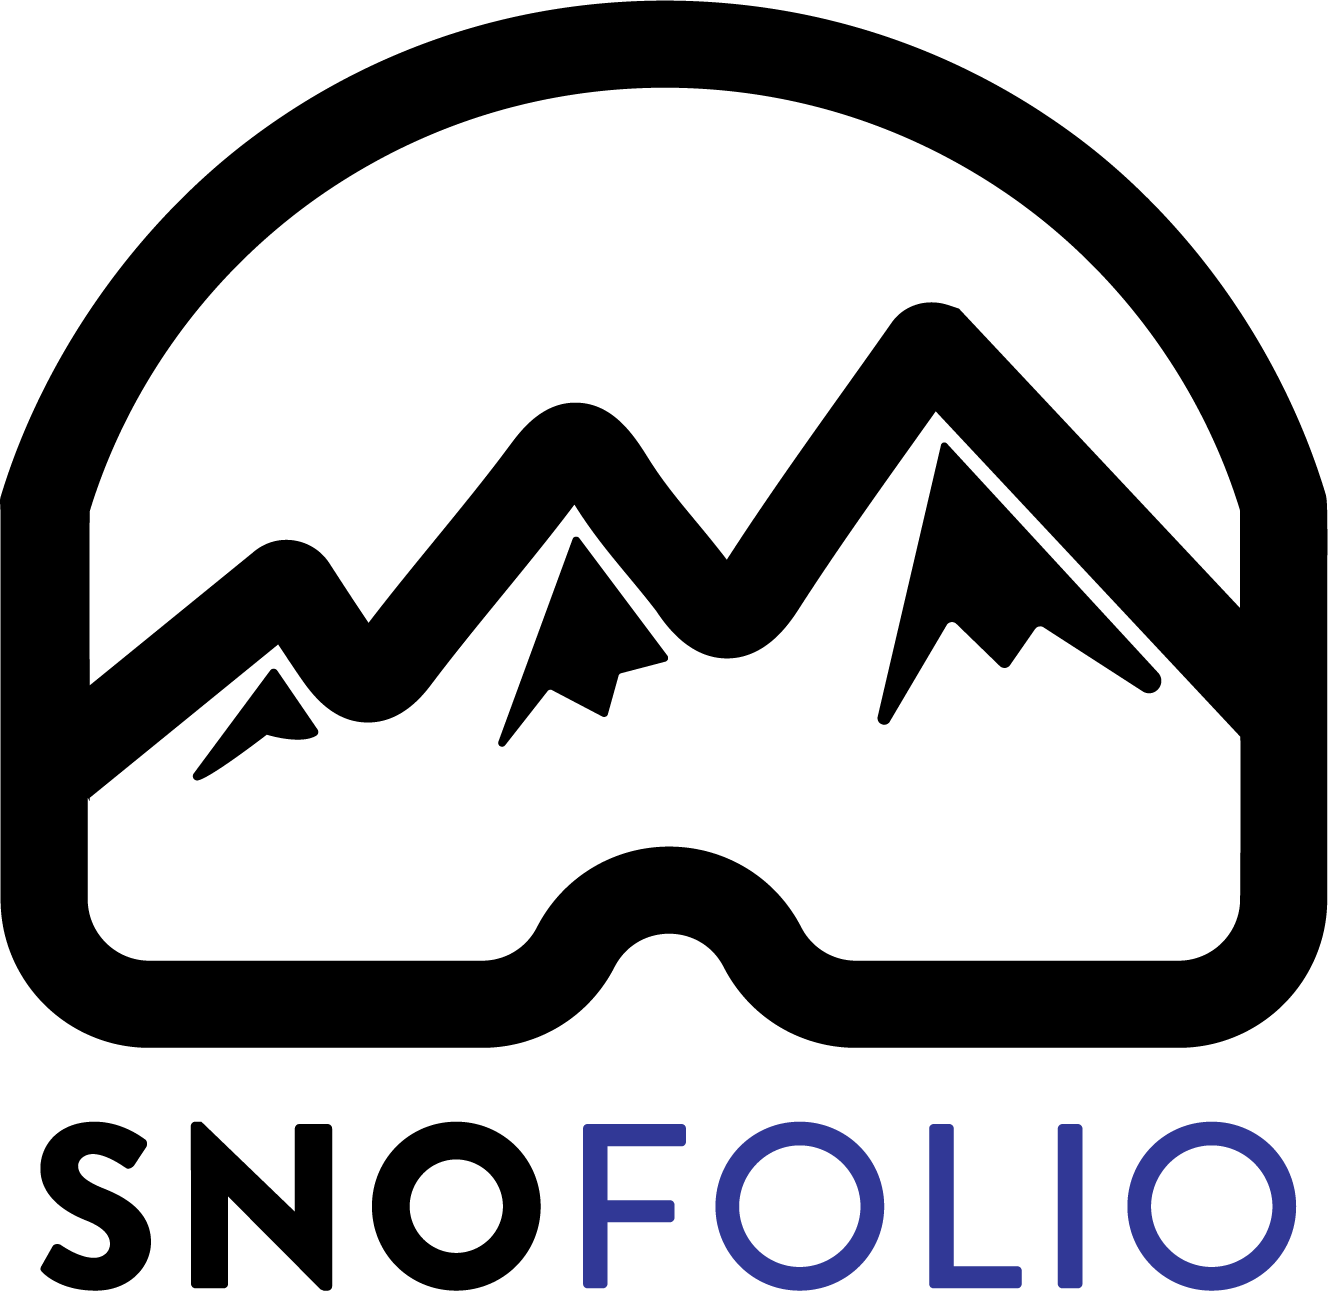 snofolio-black-stacked